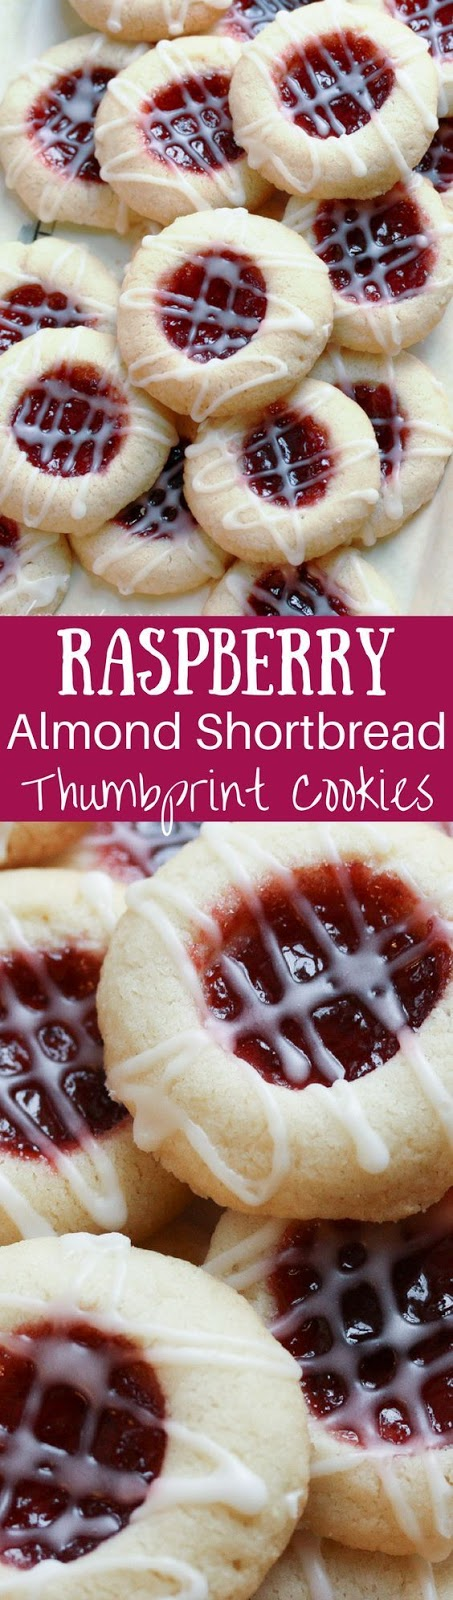 Raspberry Almond Shortbread Thumbprints Cookies